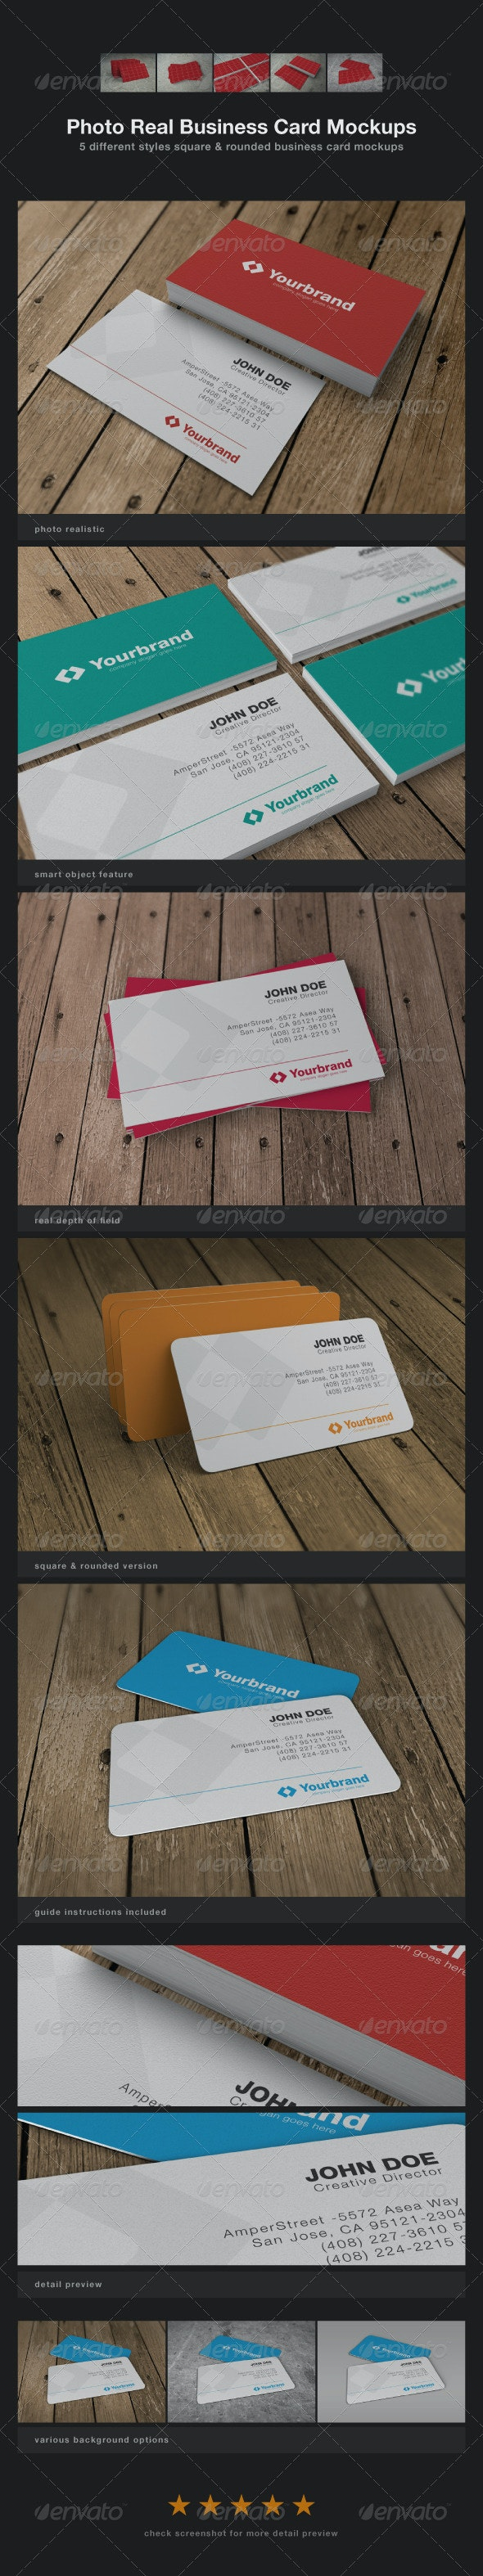 Photo Real Business Card Mockups - Business Cards Print